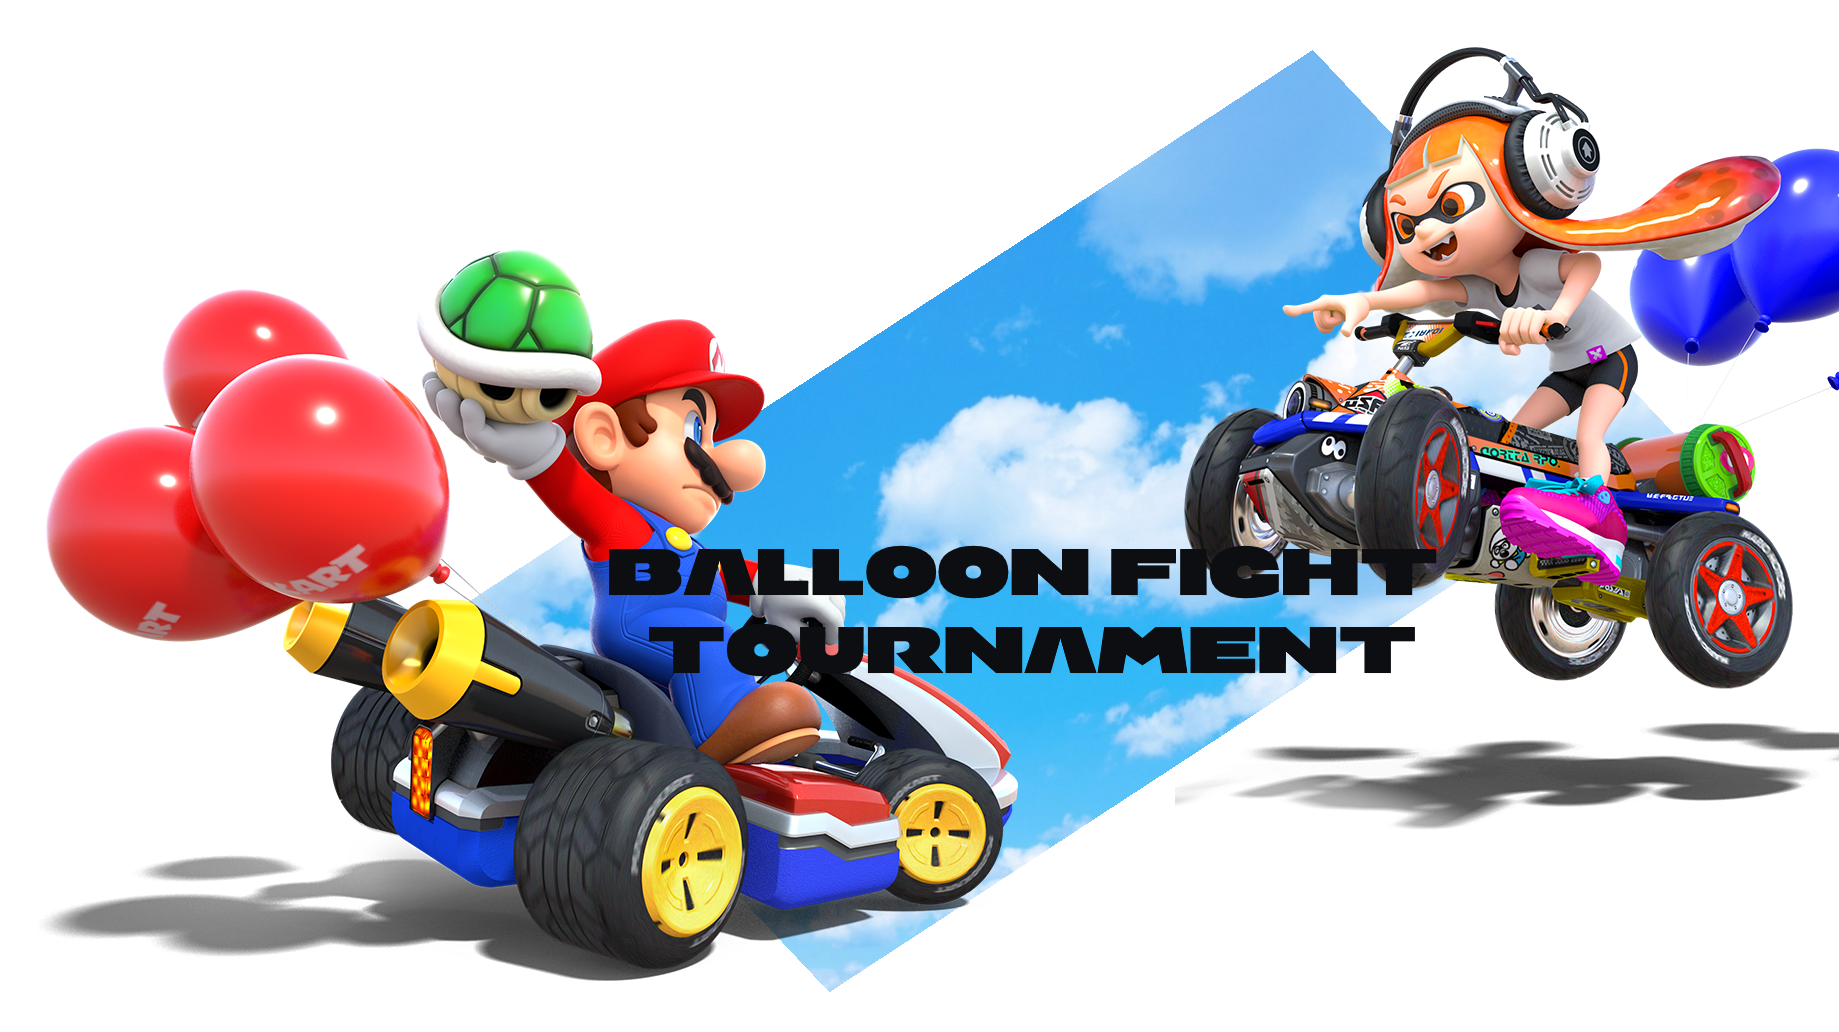 https://cdn.discordapp.com/attachments/467642183529398272/515902030808743947/Balloon_Fight_Tournament.png